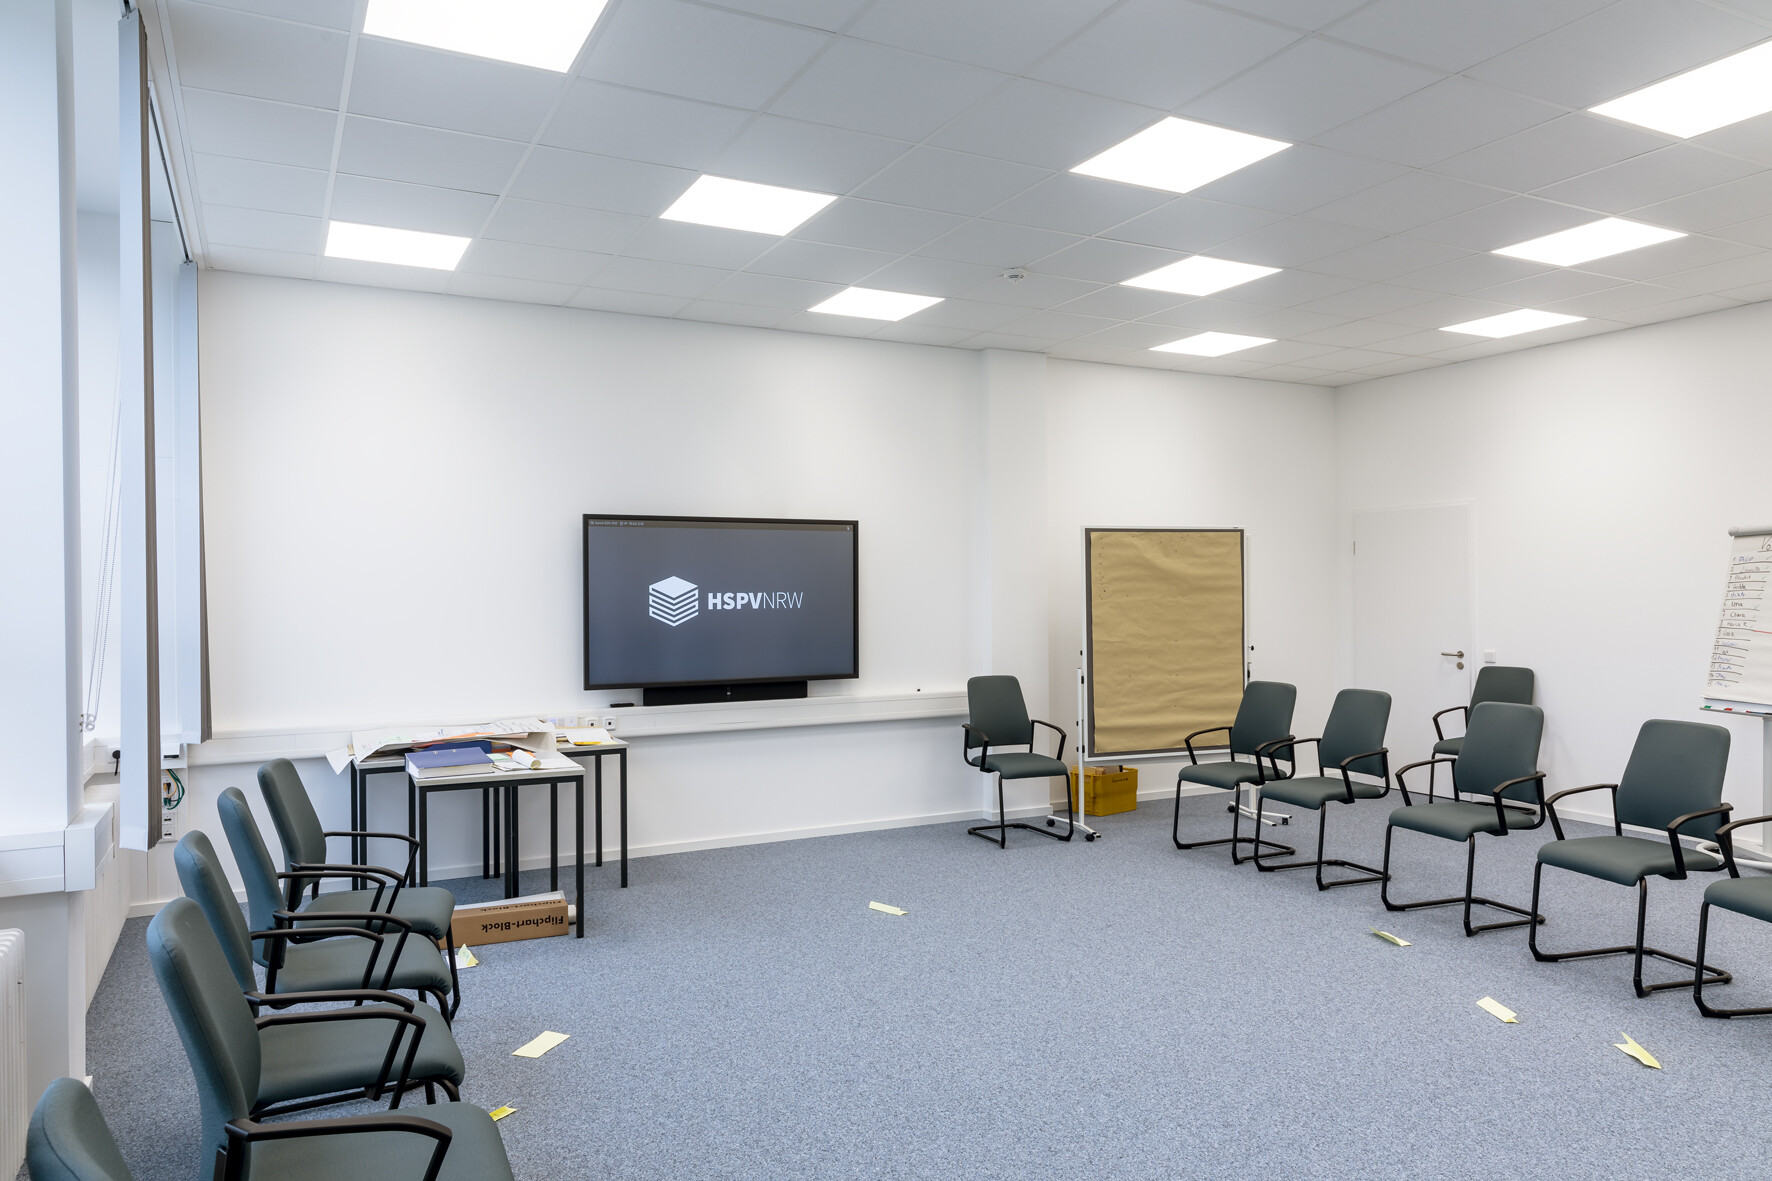 Smaller groupwork rooms are equipped with  Cynap Core units to facilitate app-free dongle-free  BYOD wireless presentation. Photo: Copyright Jörg Küster